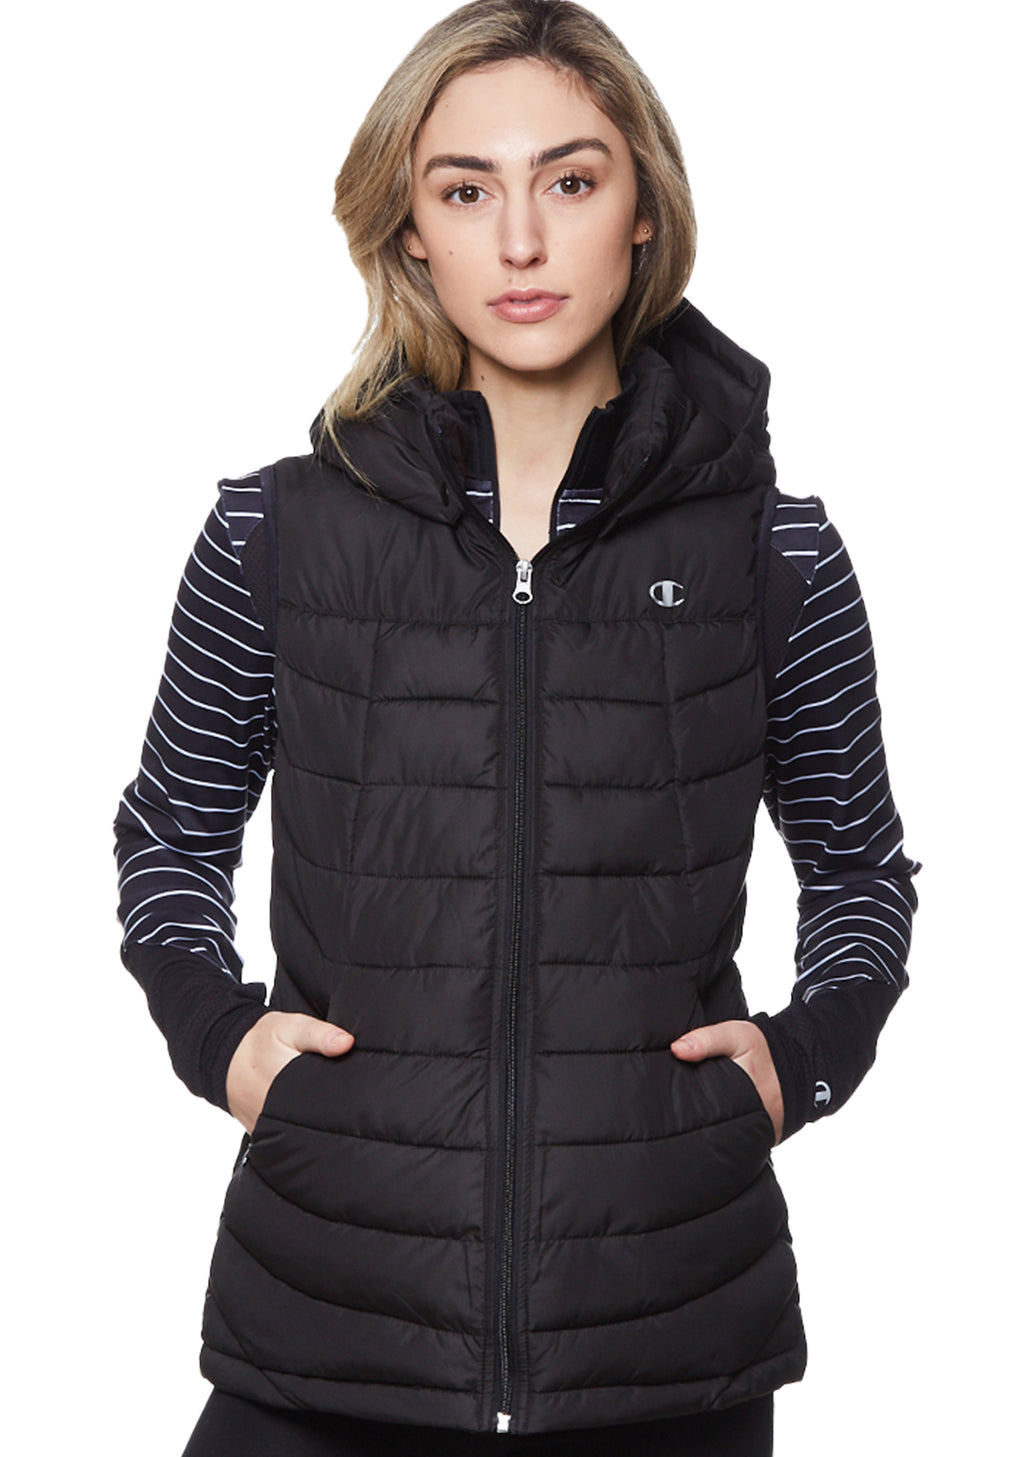 CHAMPION POWERTRAIN PUFFER VEST WOMENS <br> C1654H